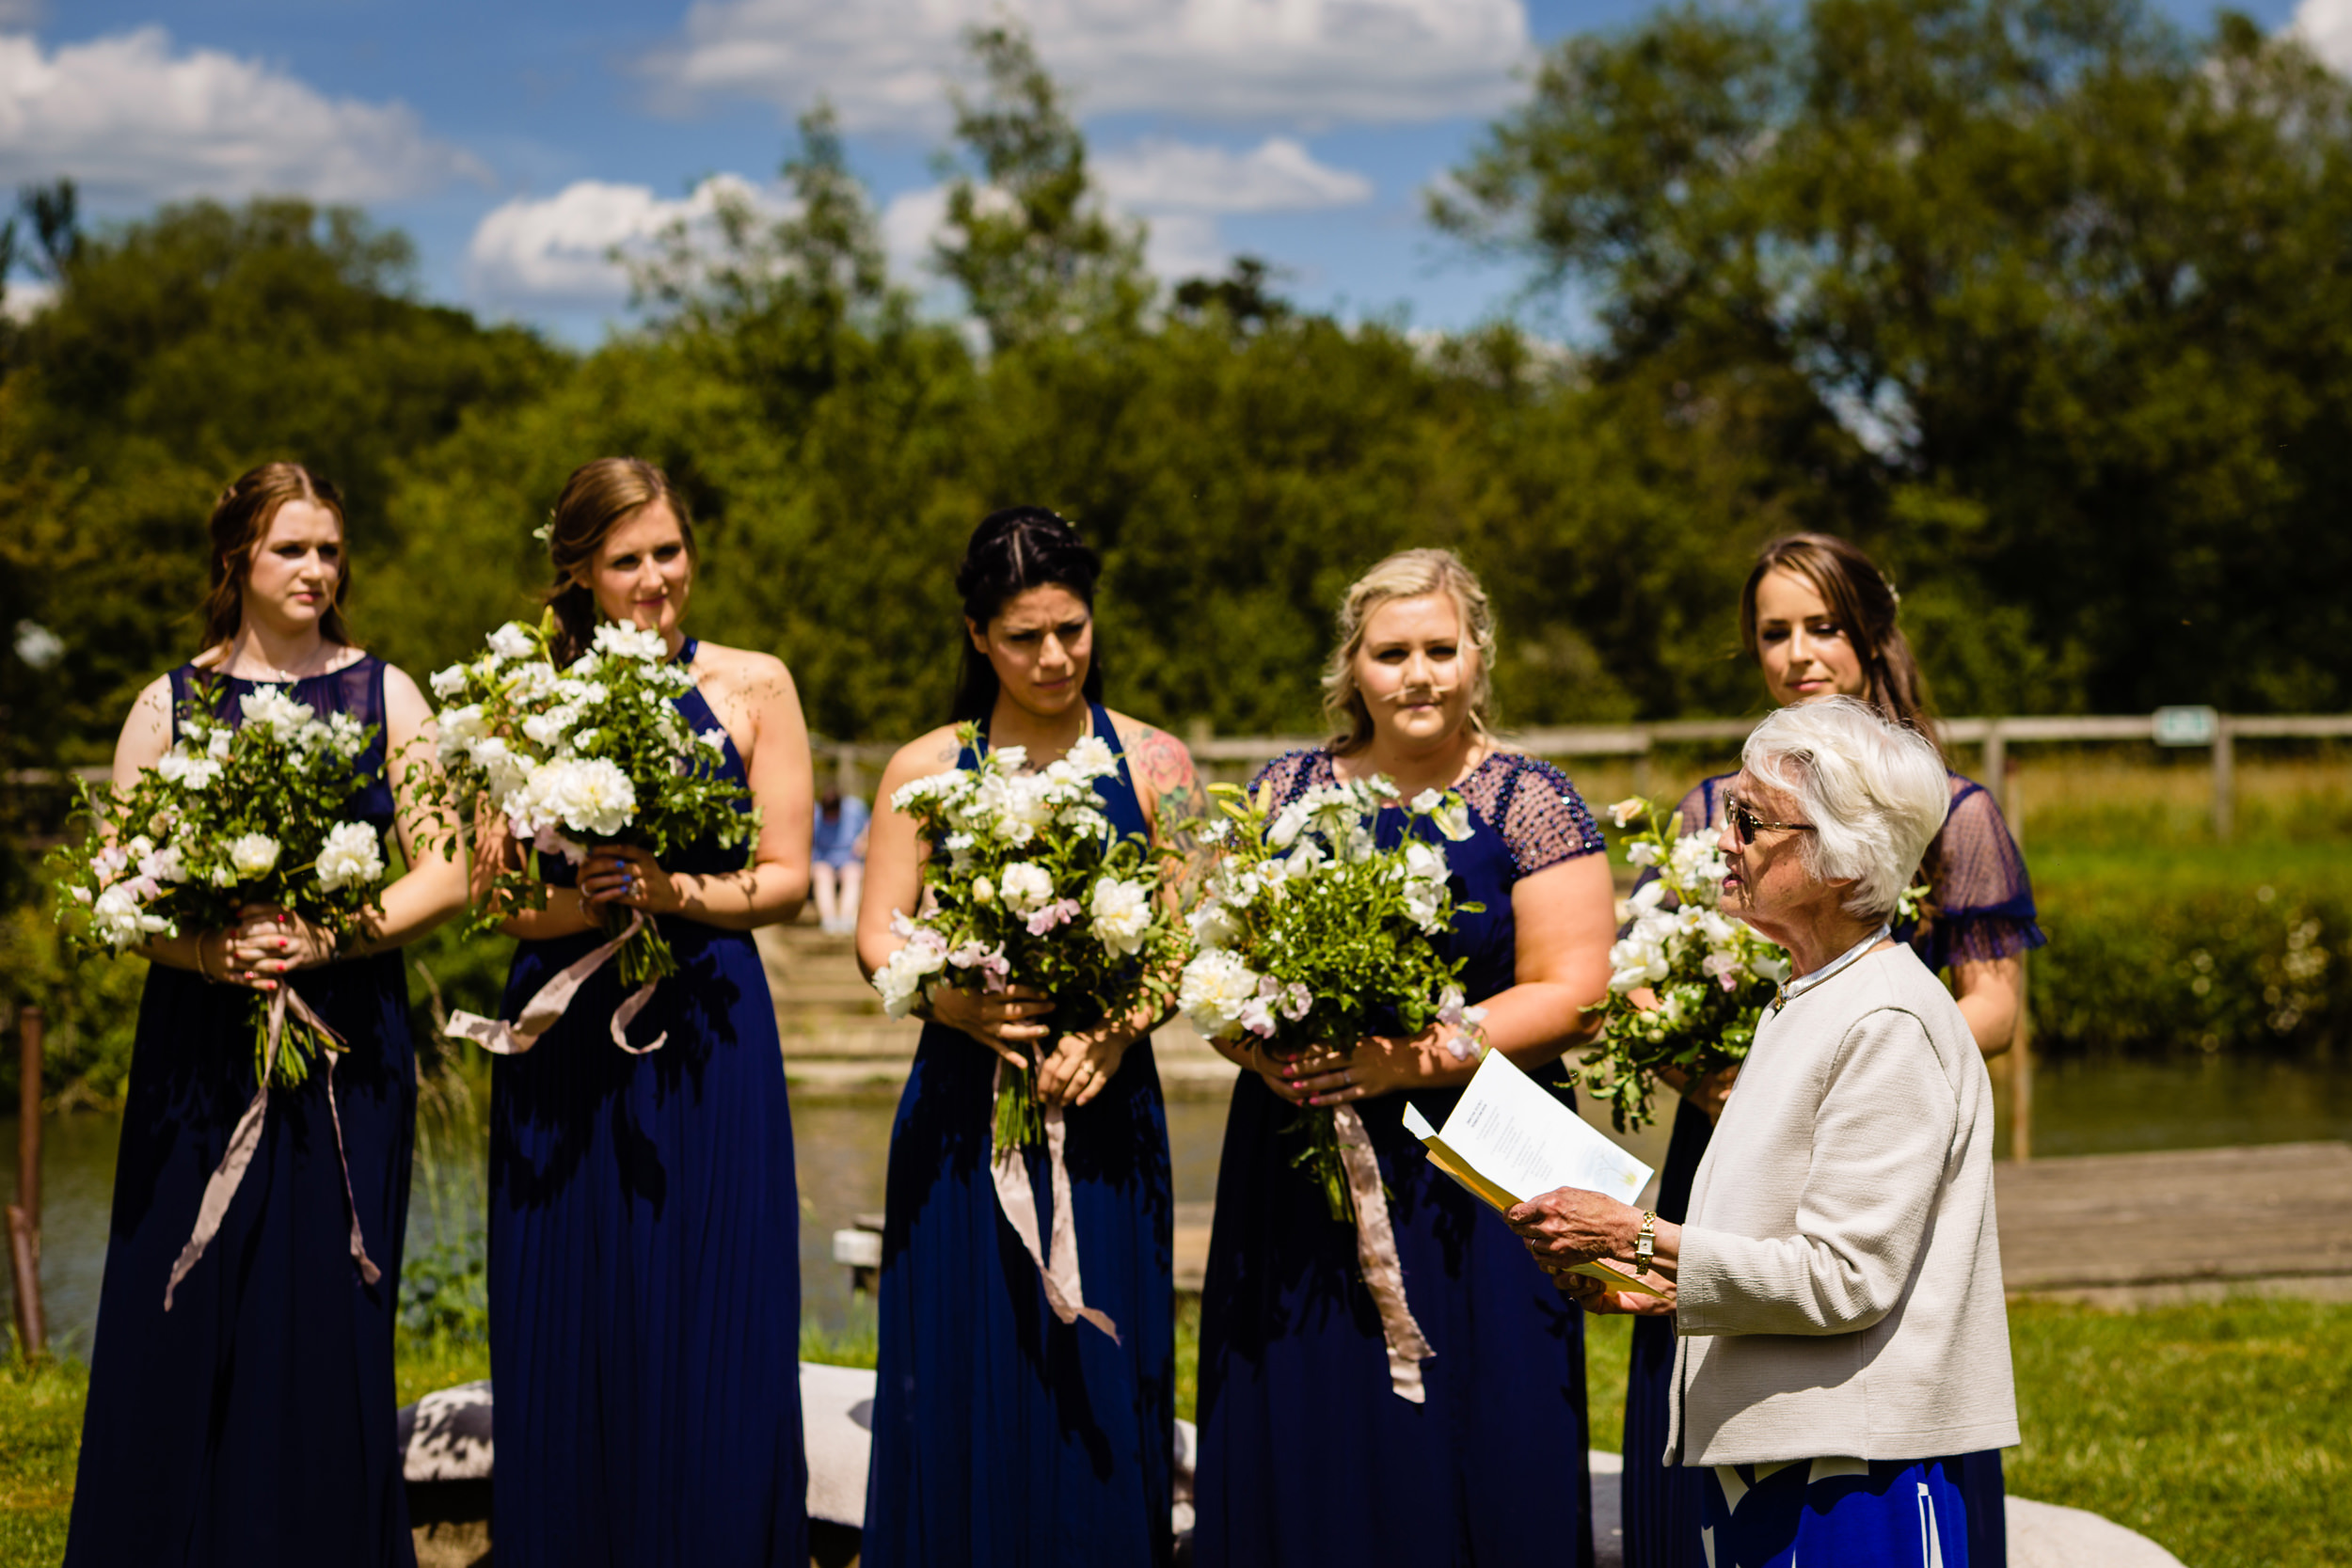 grandma gives reading watched by bridesmaids. maybush wedding co wedding photography by emma and rich.